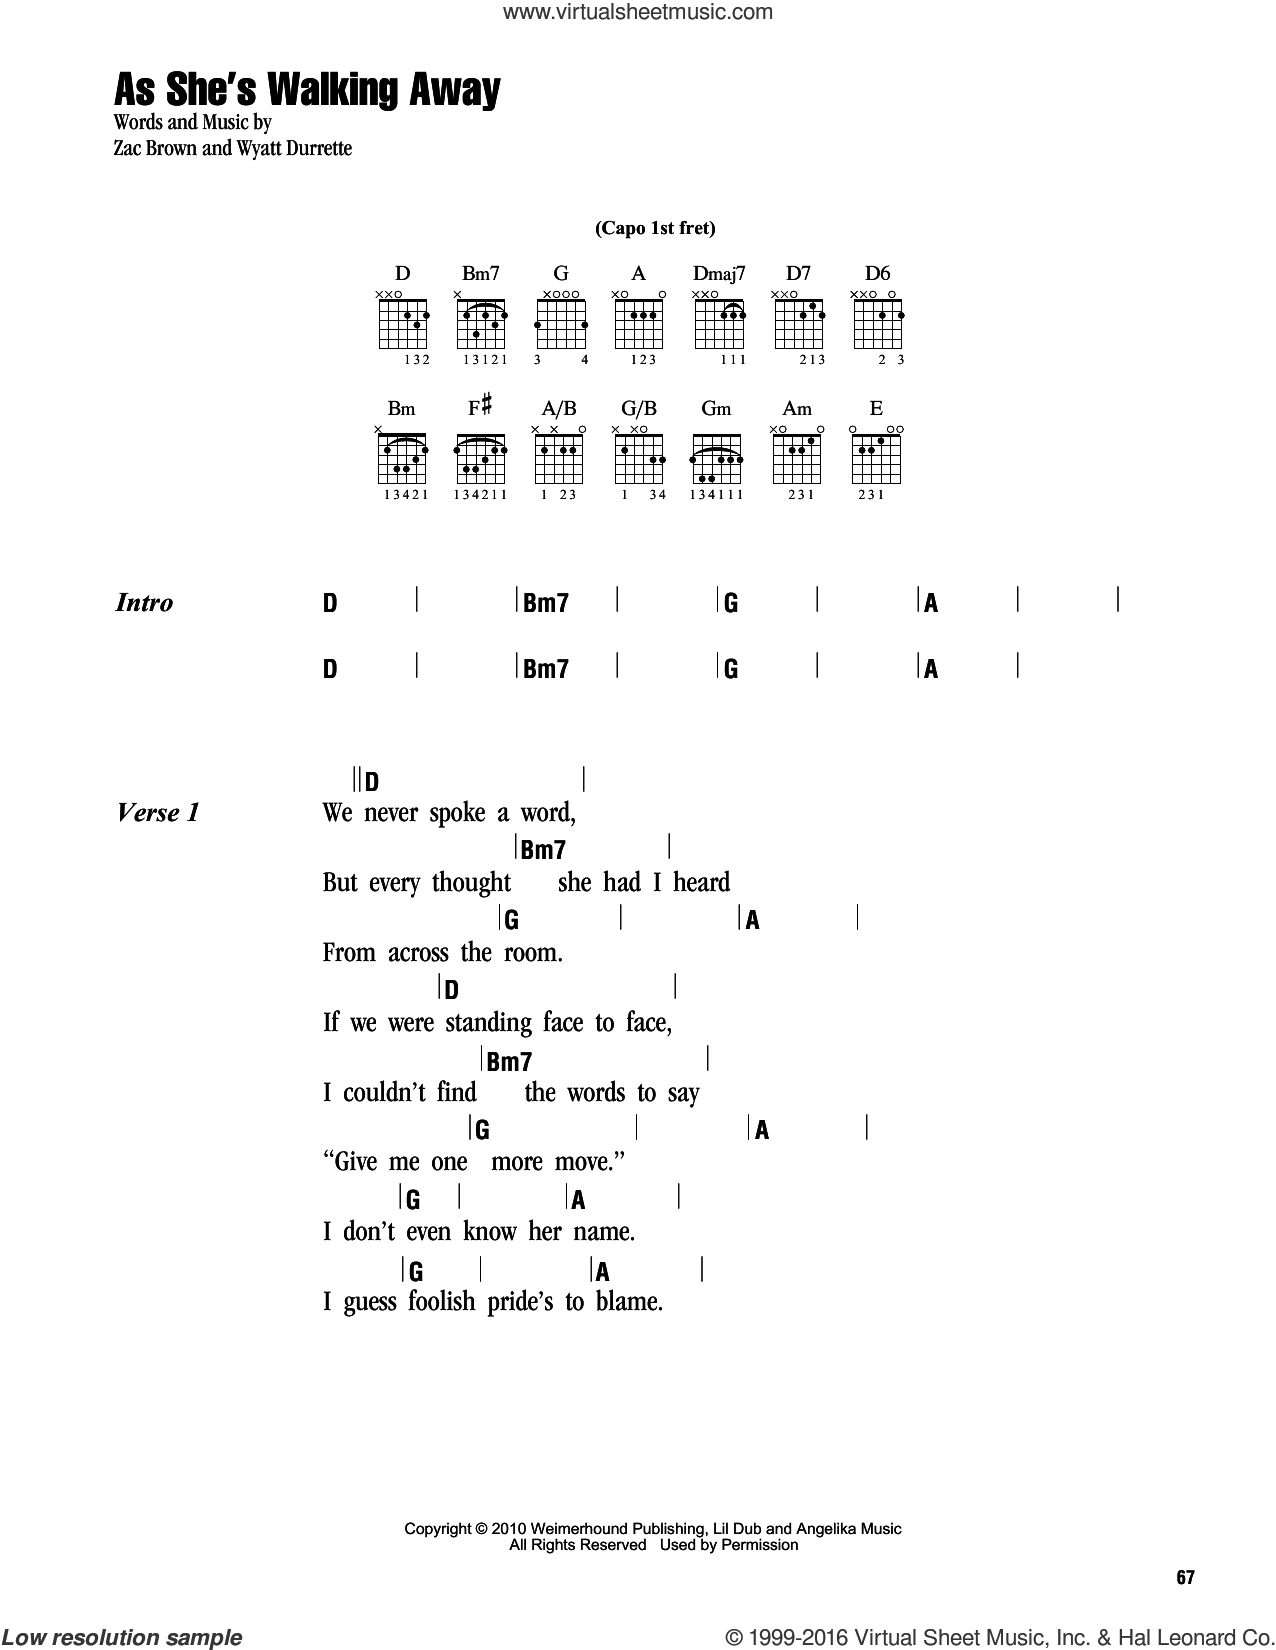 As She's Walking Away sheet music for guitar (chords) by Zac Brown Band featuring Alan Jackson, Wyatt Durrette and Zac Brown, intermediate skill level